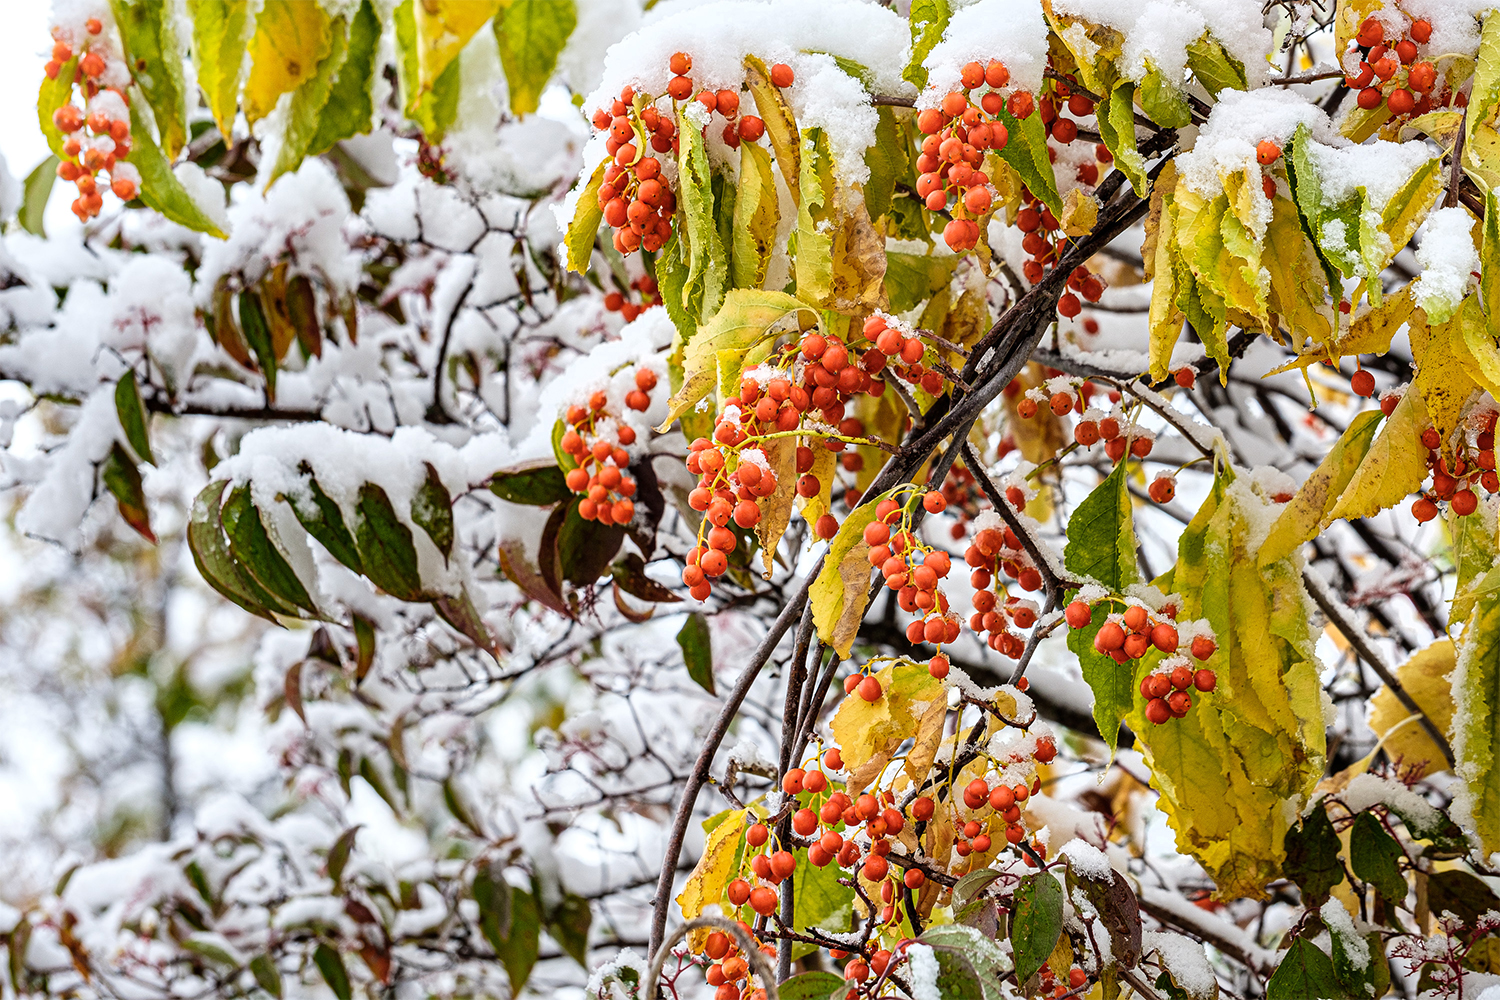 Snow on leaves and berries